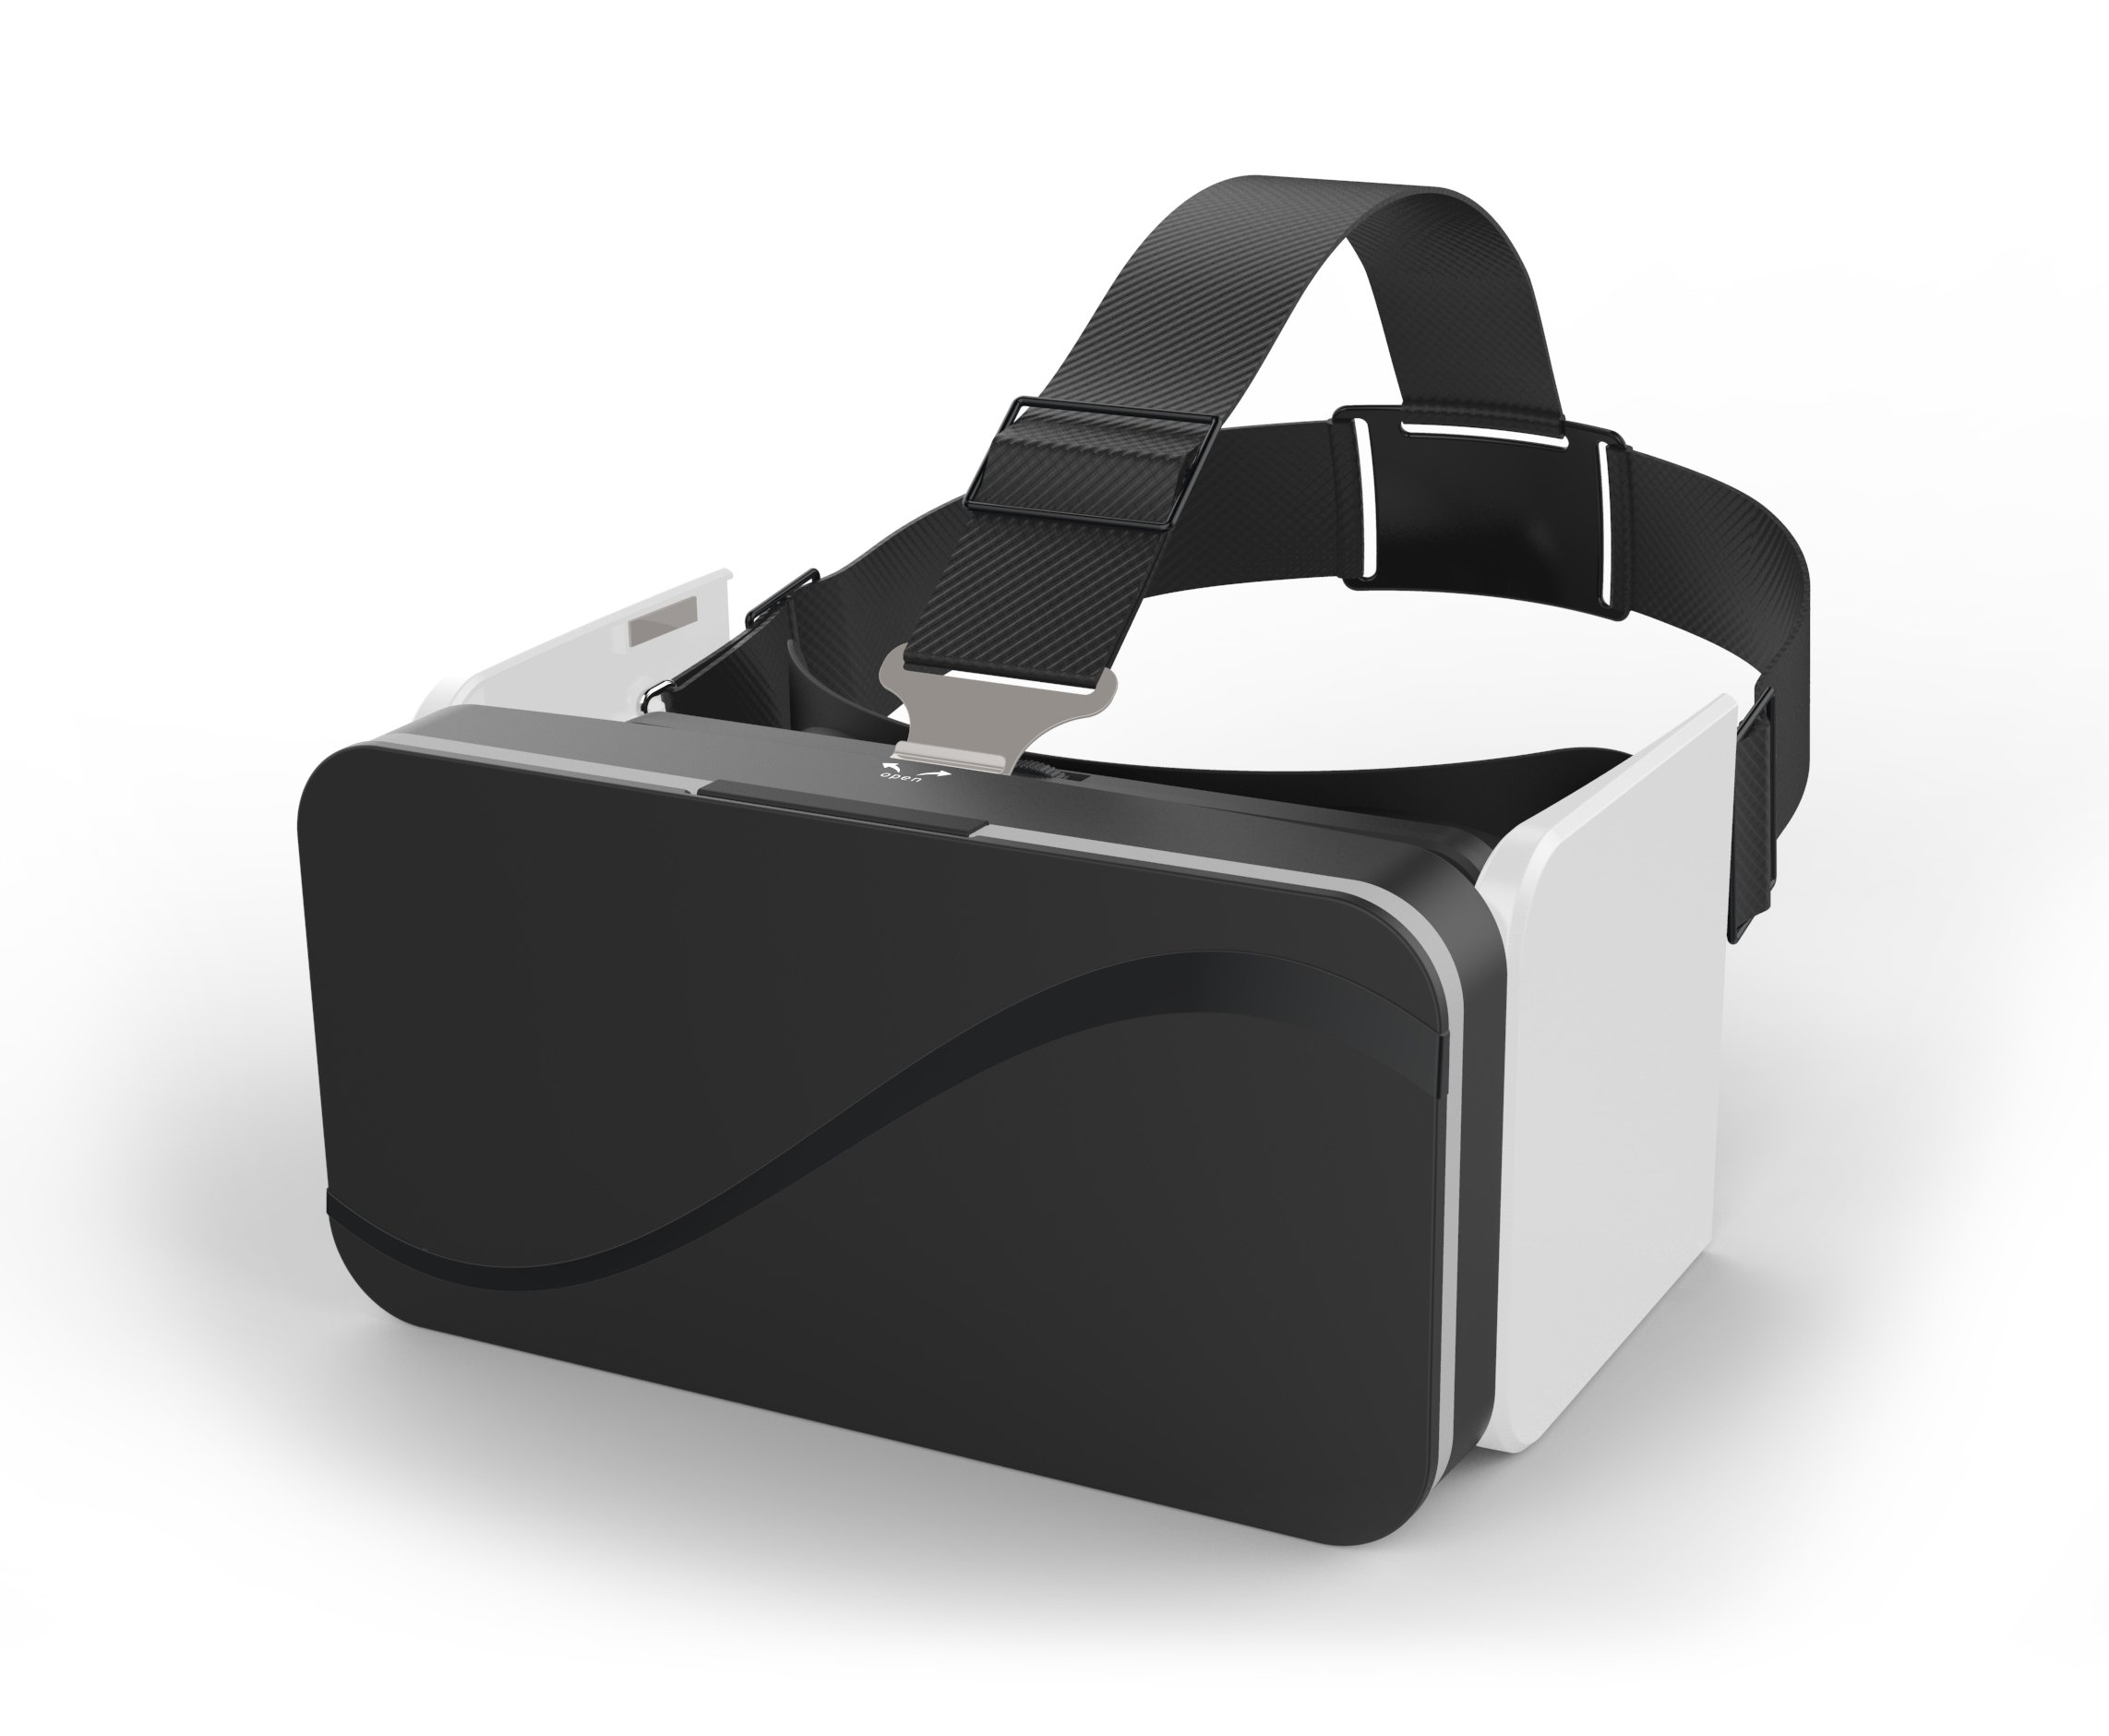 GenBasic Compact Folding Virtual Reality VR Headset - Light 3D Viewer for Android Cardboard and iPhone VR